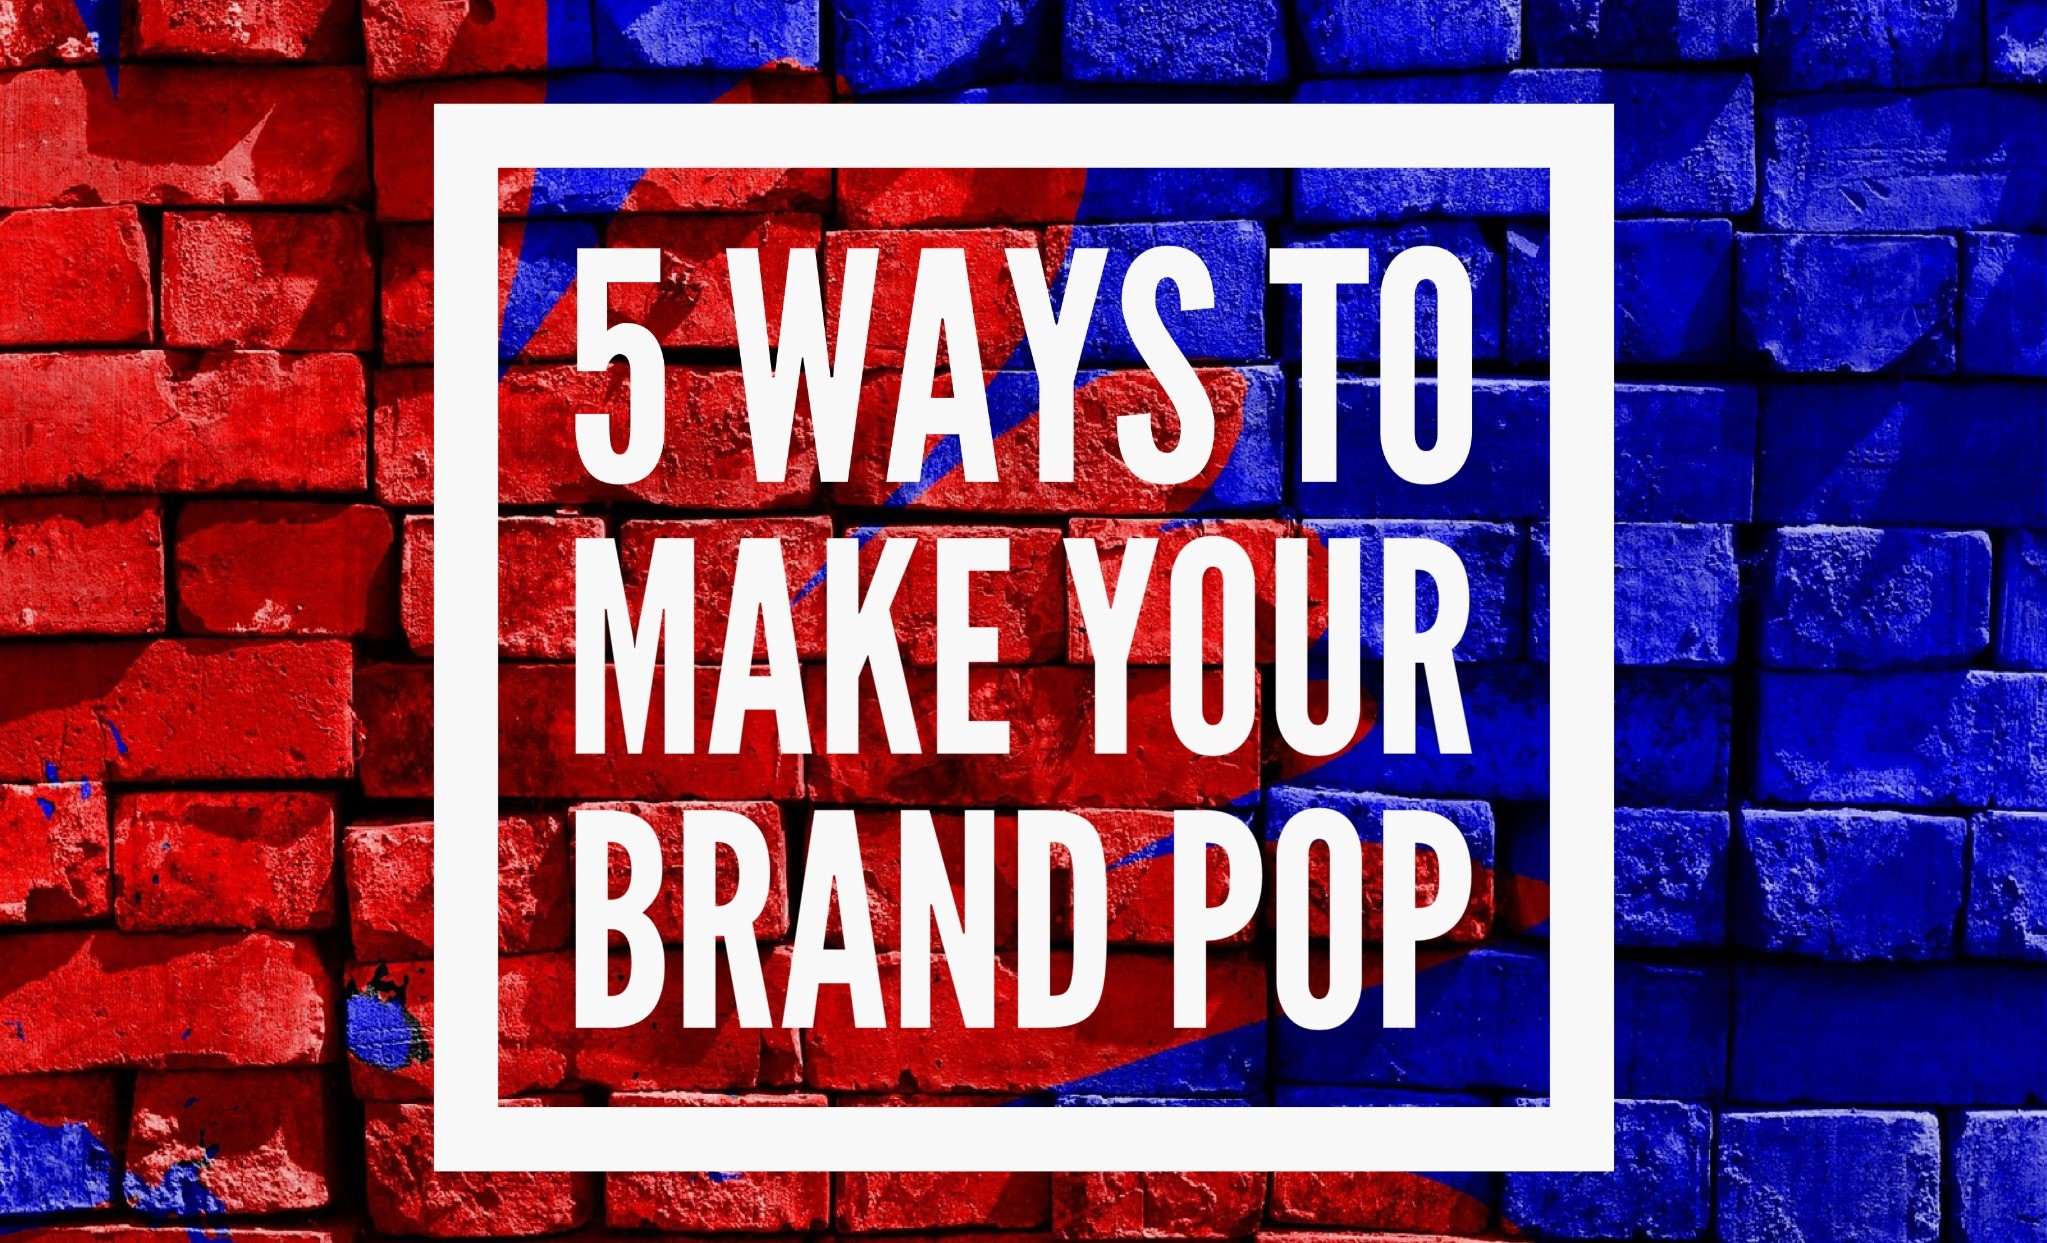 5-way-to-make-your-brand-pop